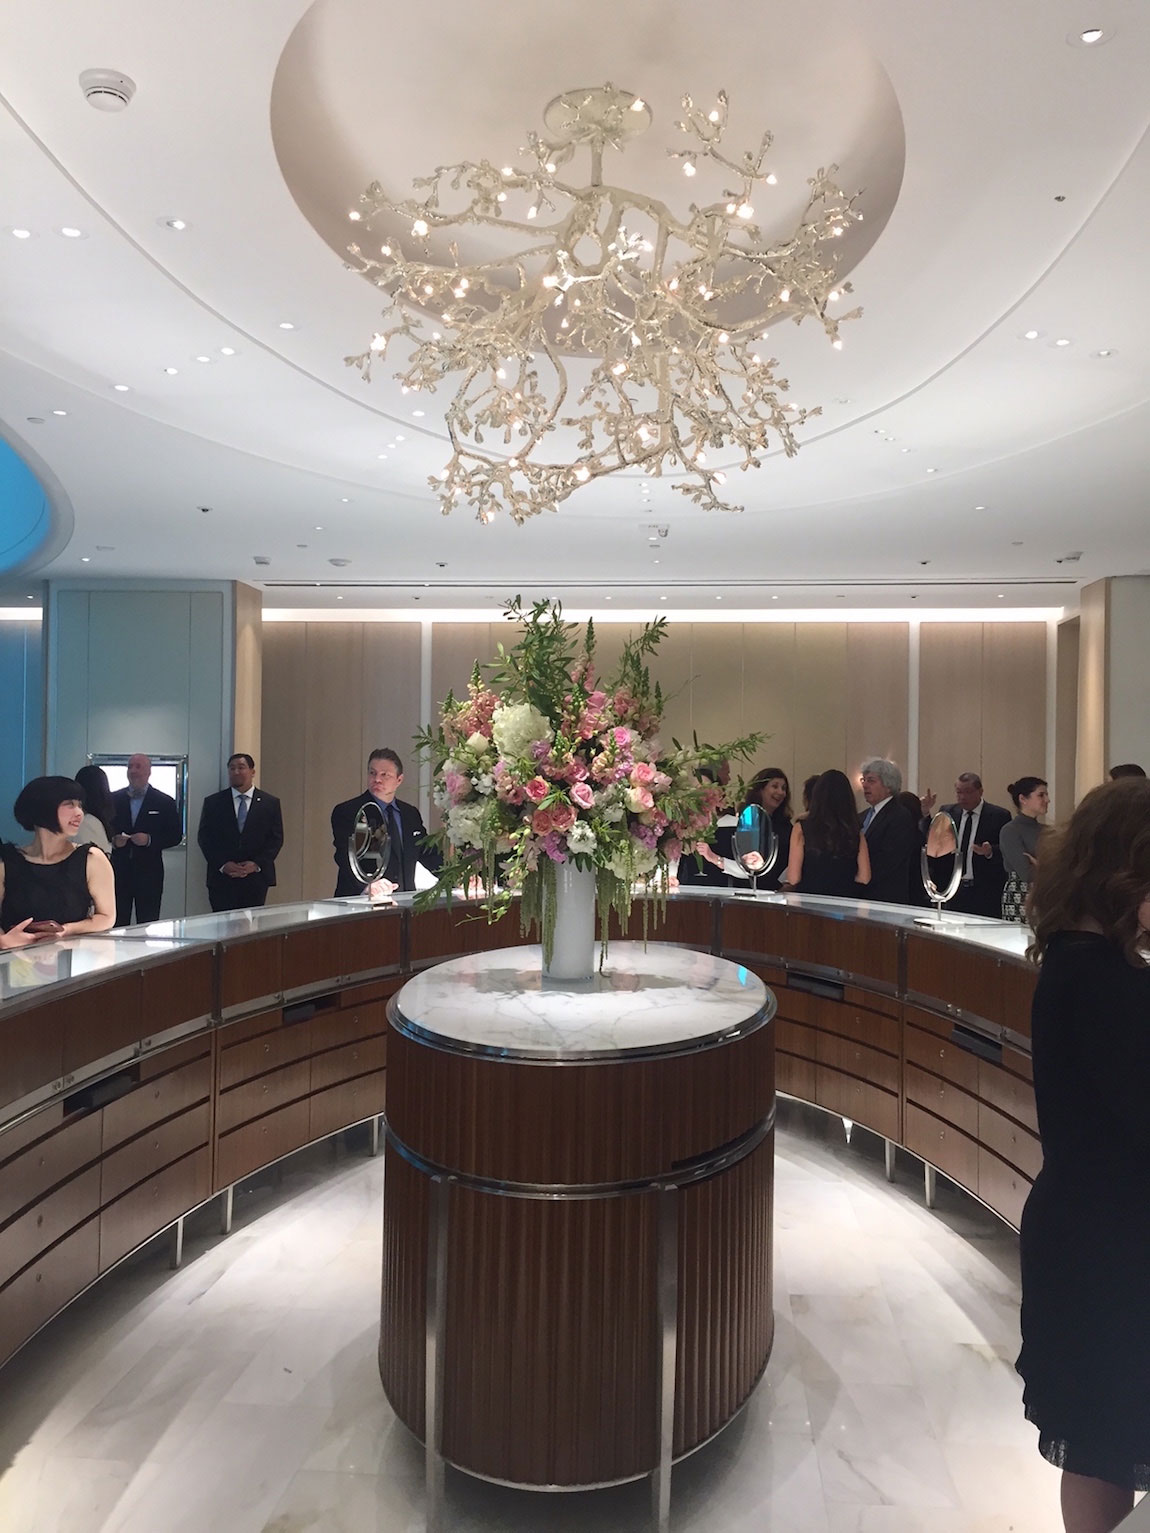 Downstairs at the new Tiffany